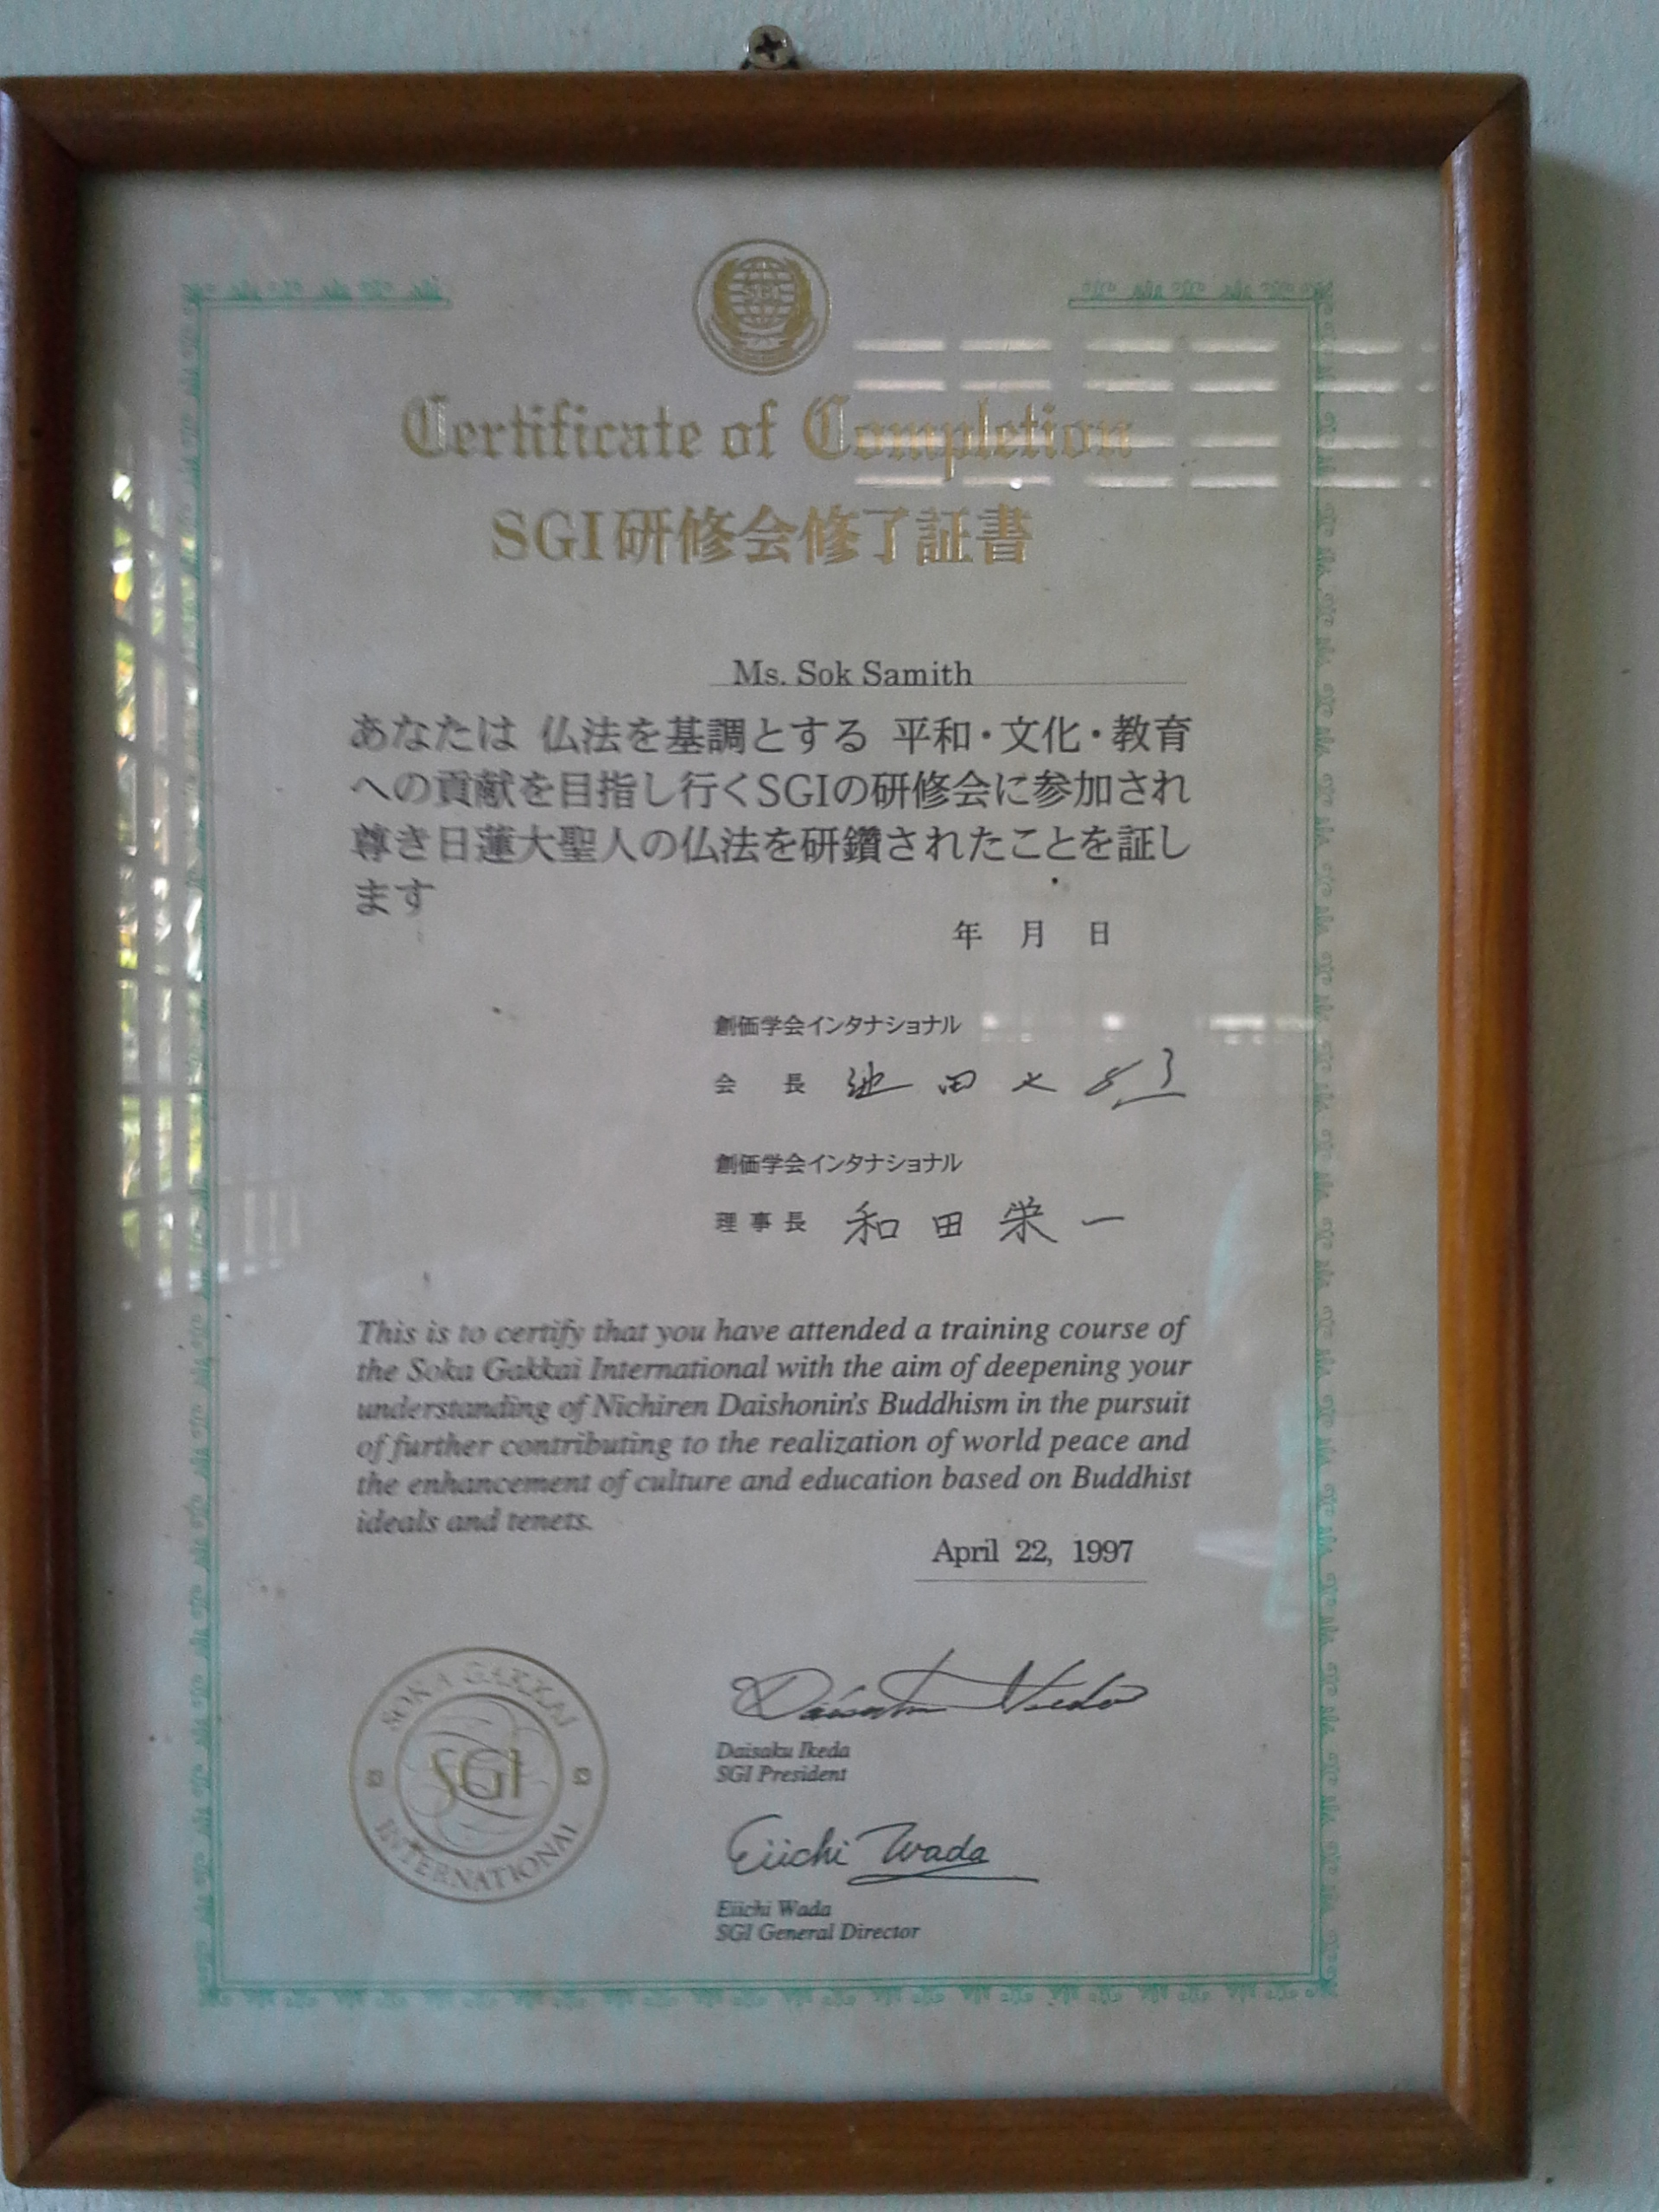 Certificate of Completion from Soka Gakkai International